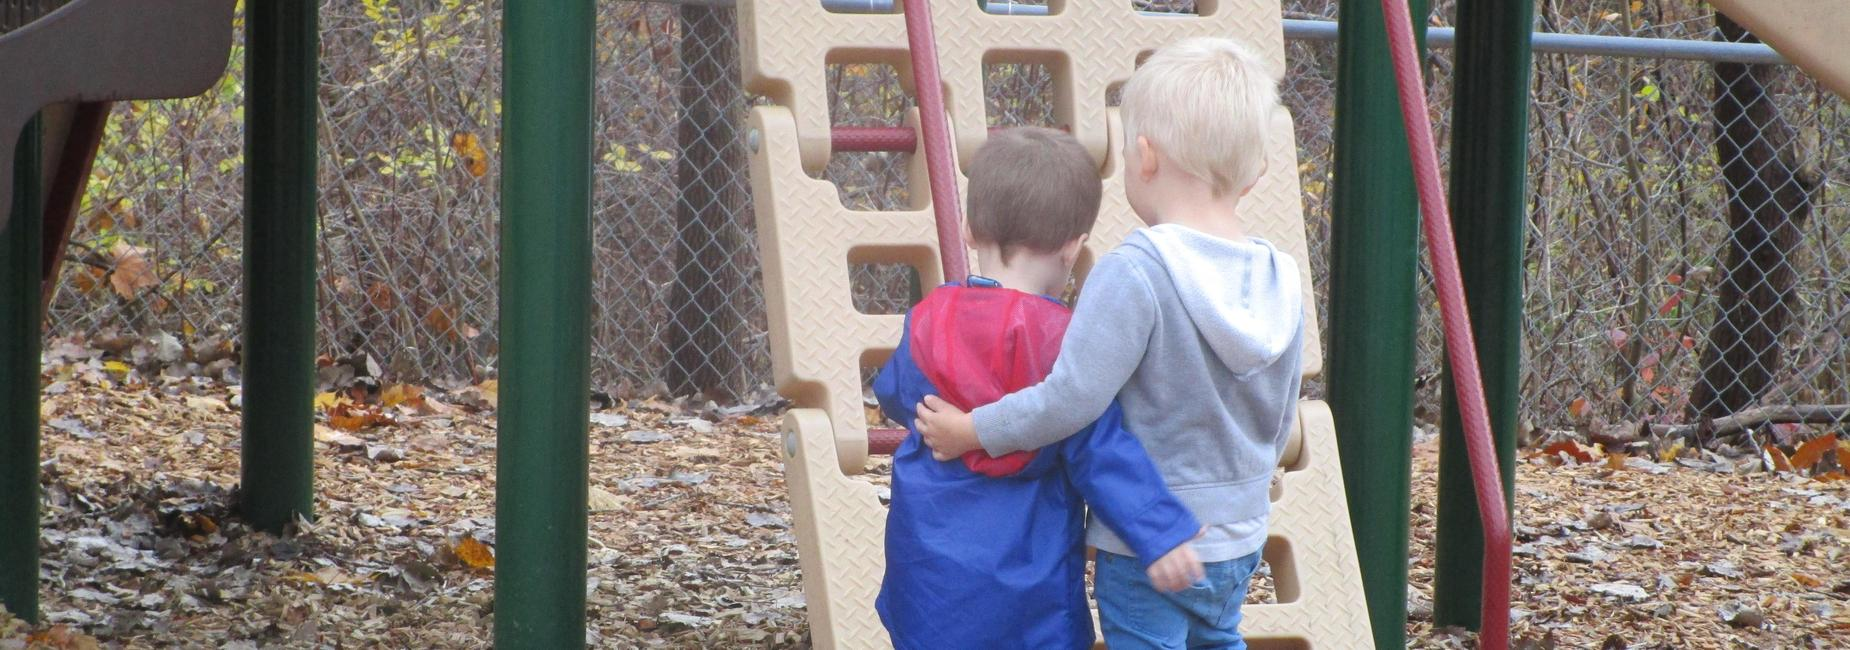 two boys playing on a jungle gym